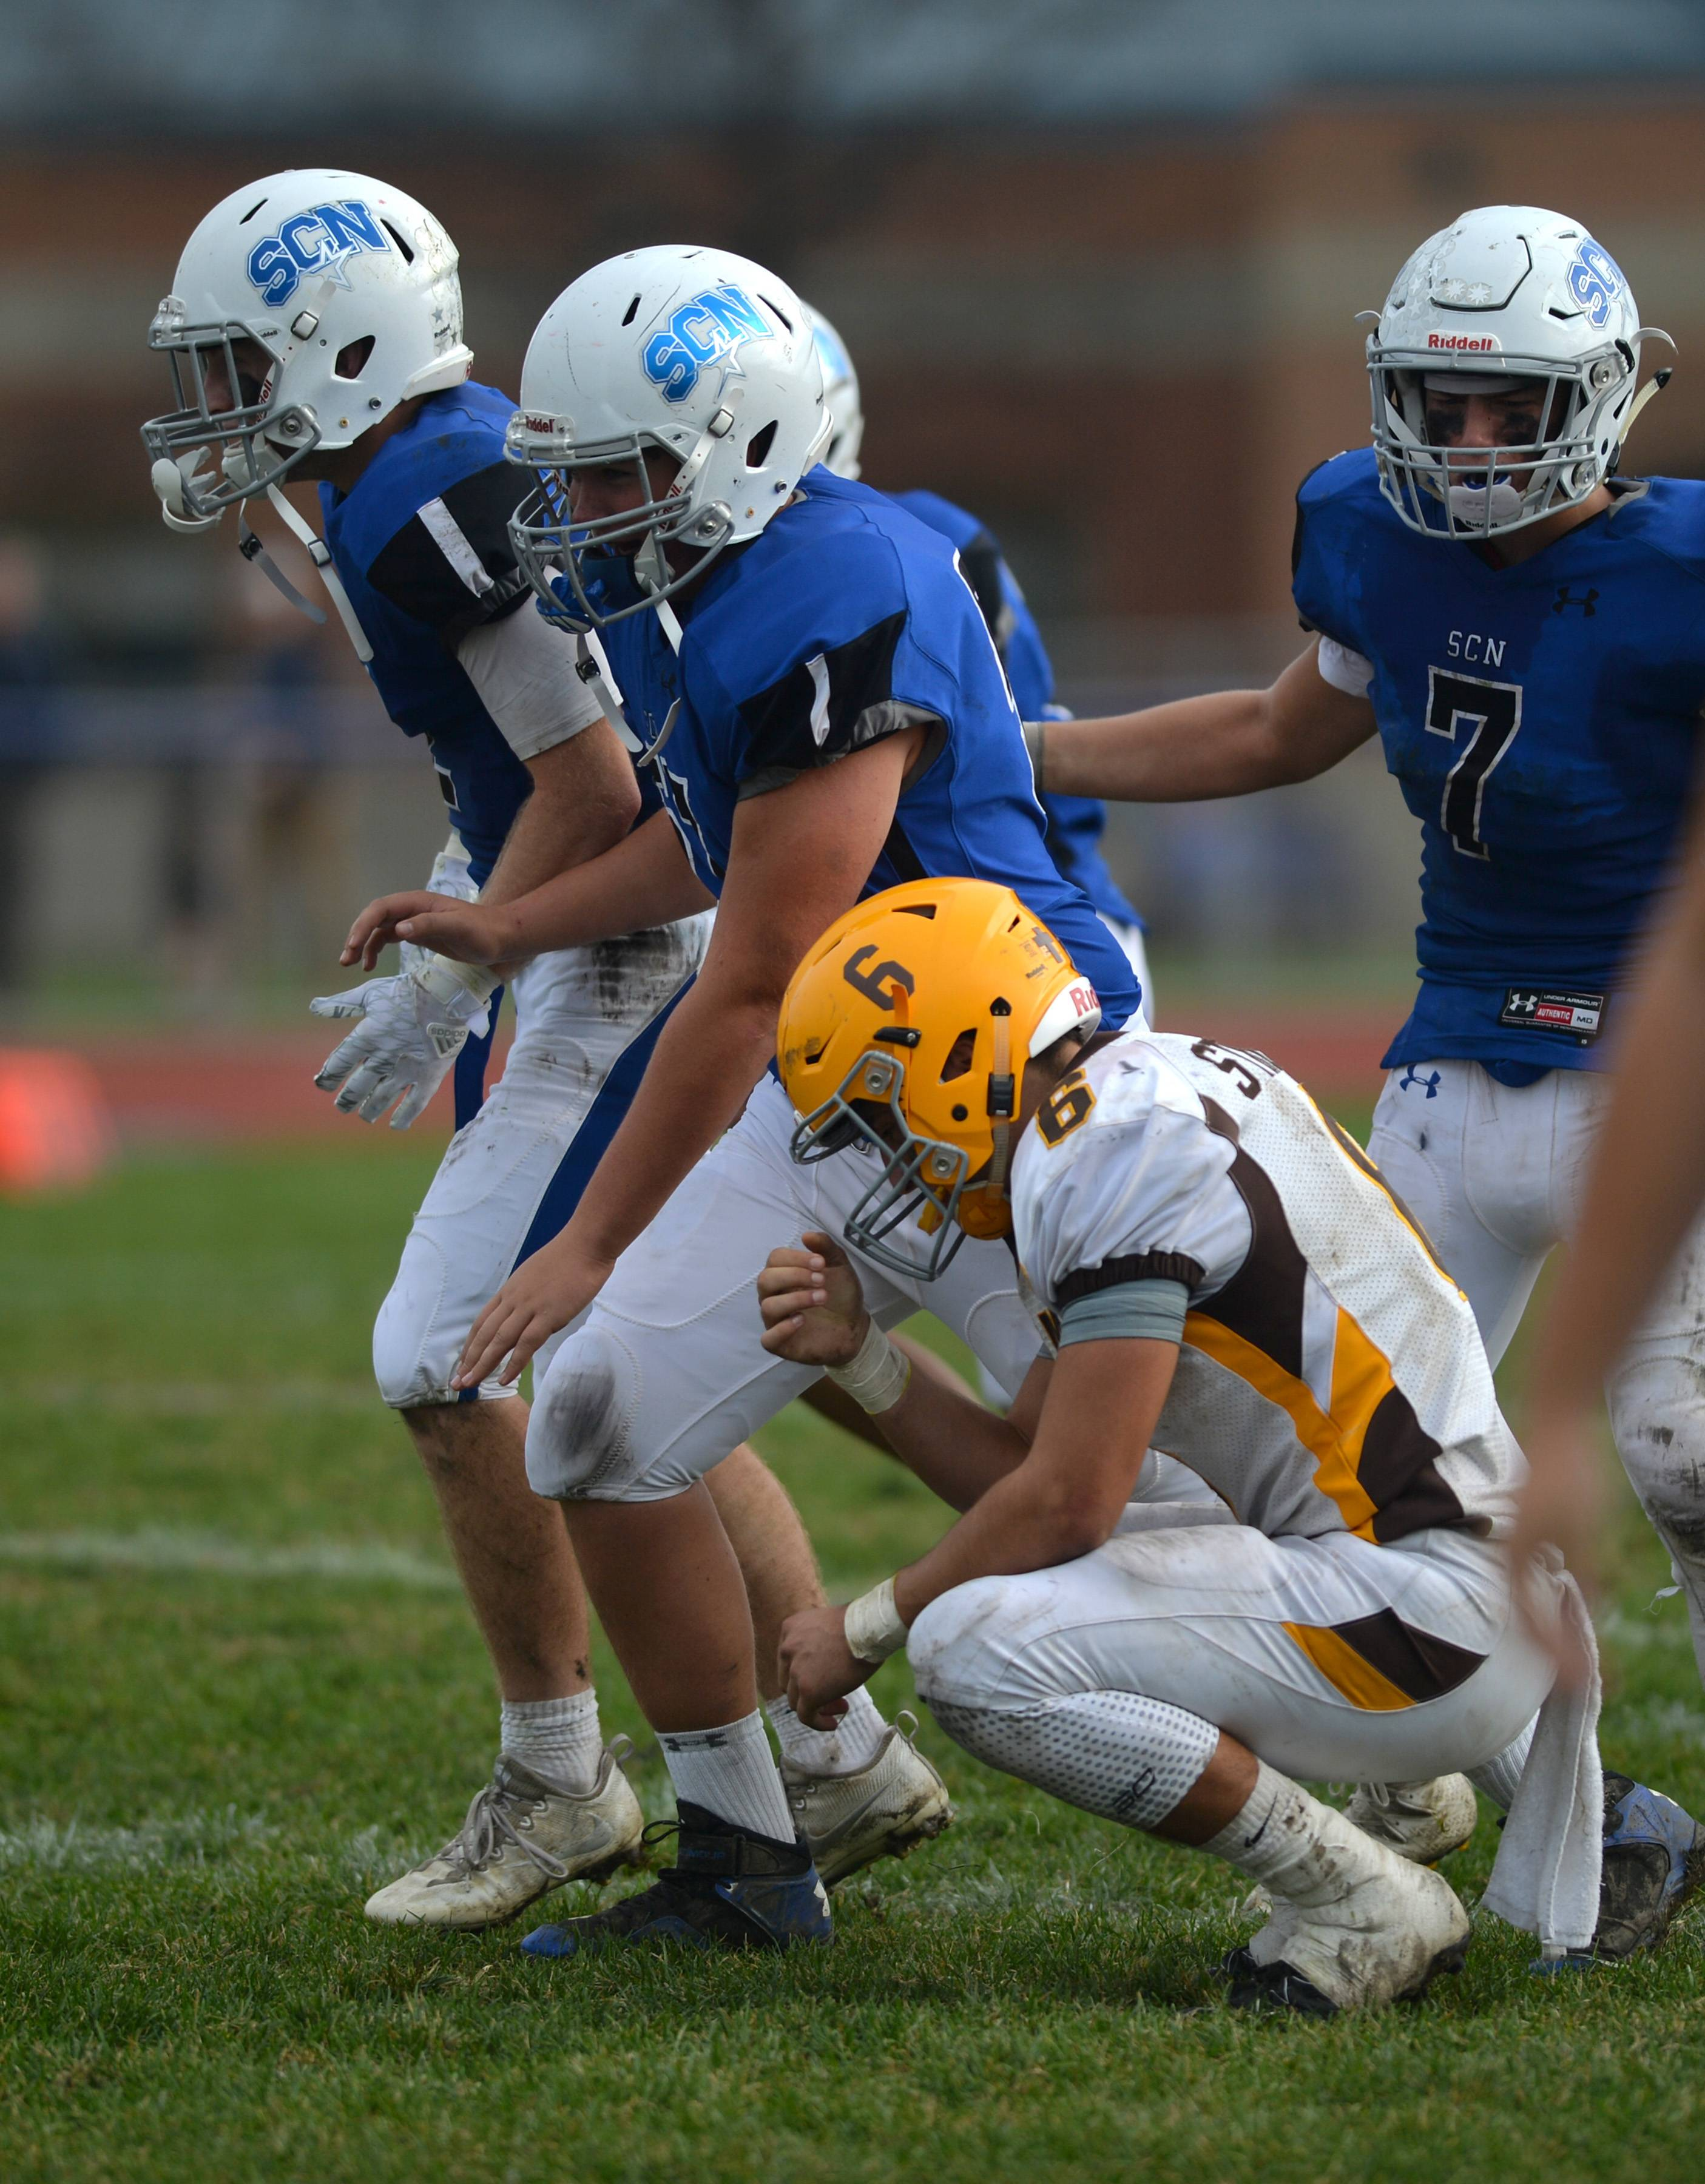 St. Charles North players celebrate as Carmel quarterback Jeremy Strutzel contemplates the North Stars' 31-24 double overtime win in a HSA Class 7A playoff game Saturday in St. Charles.